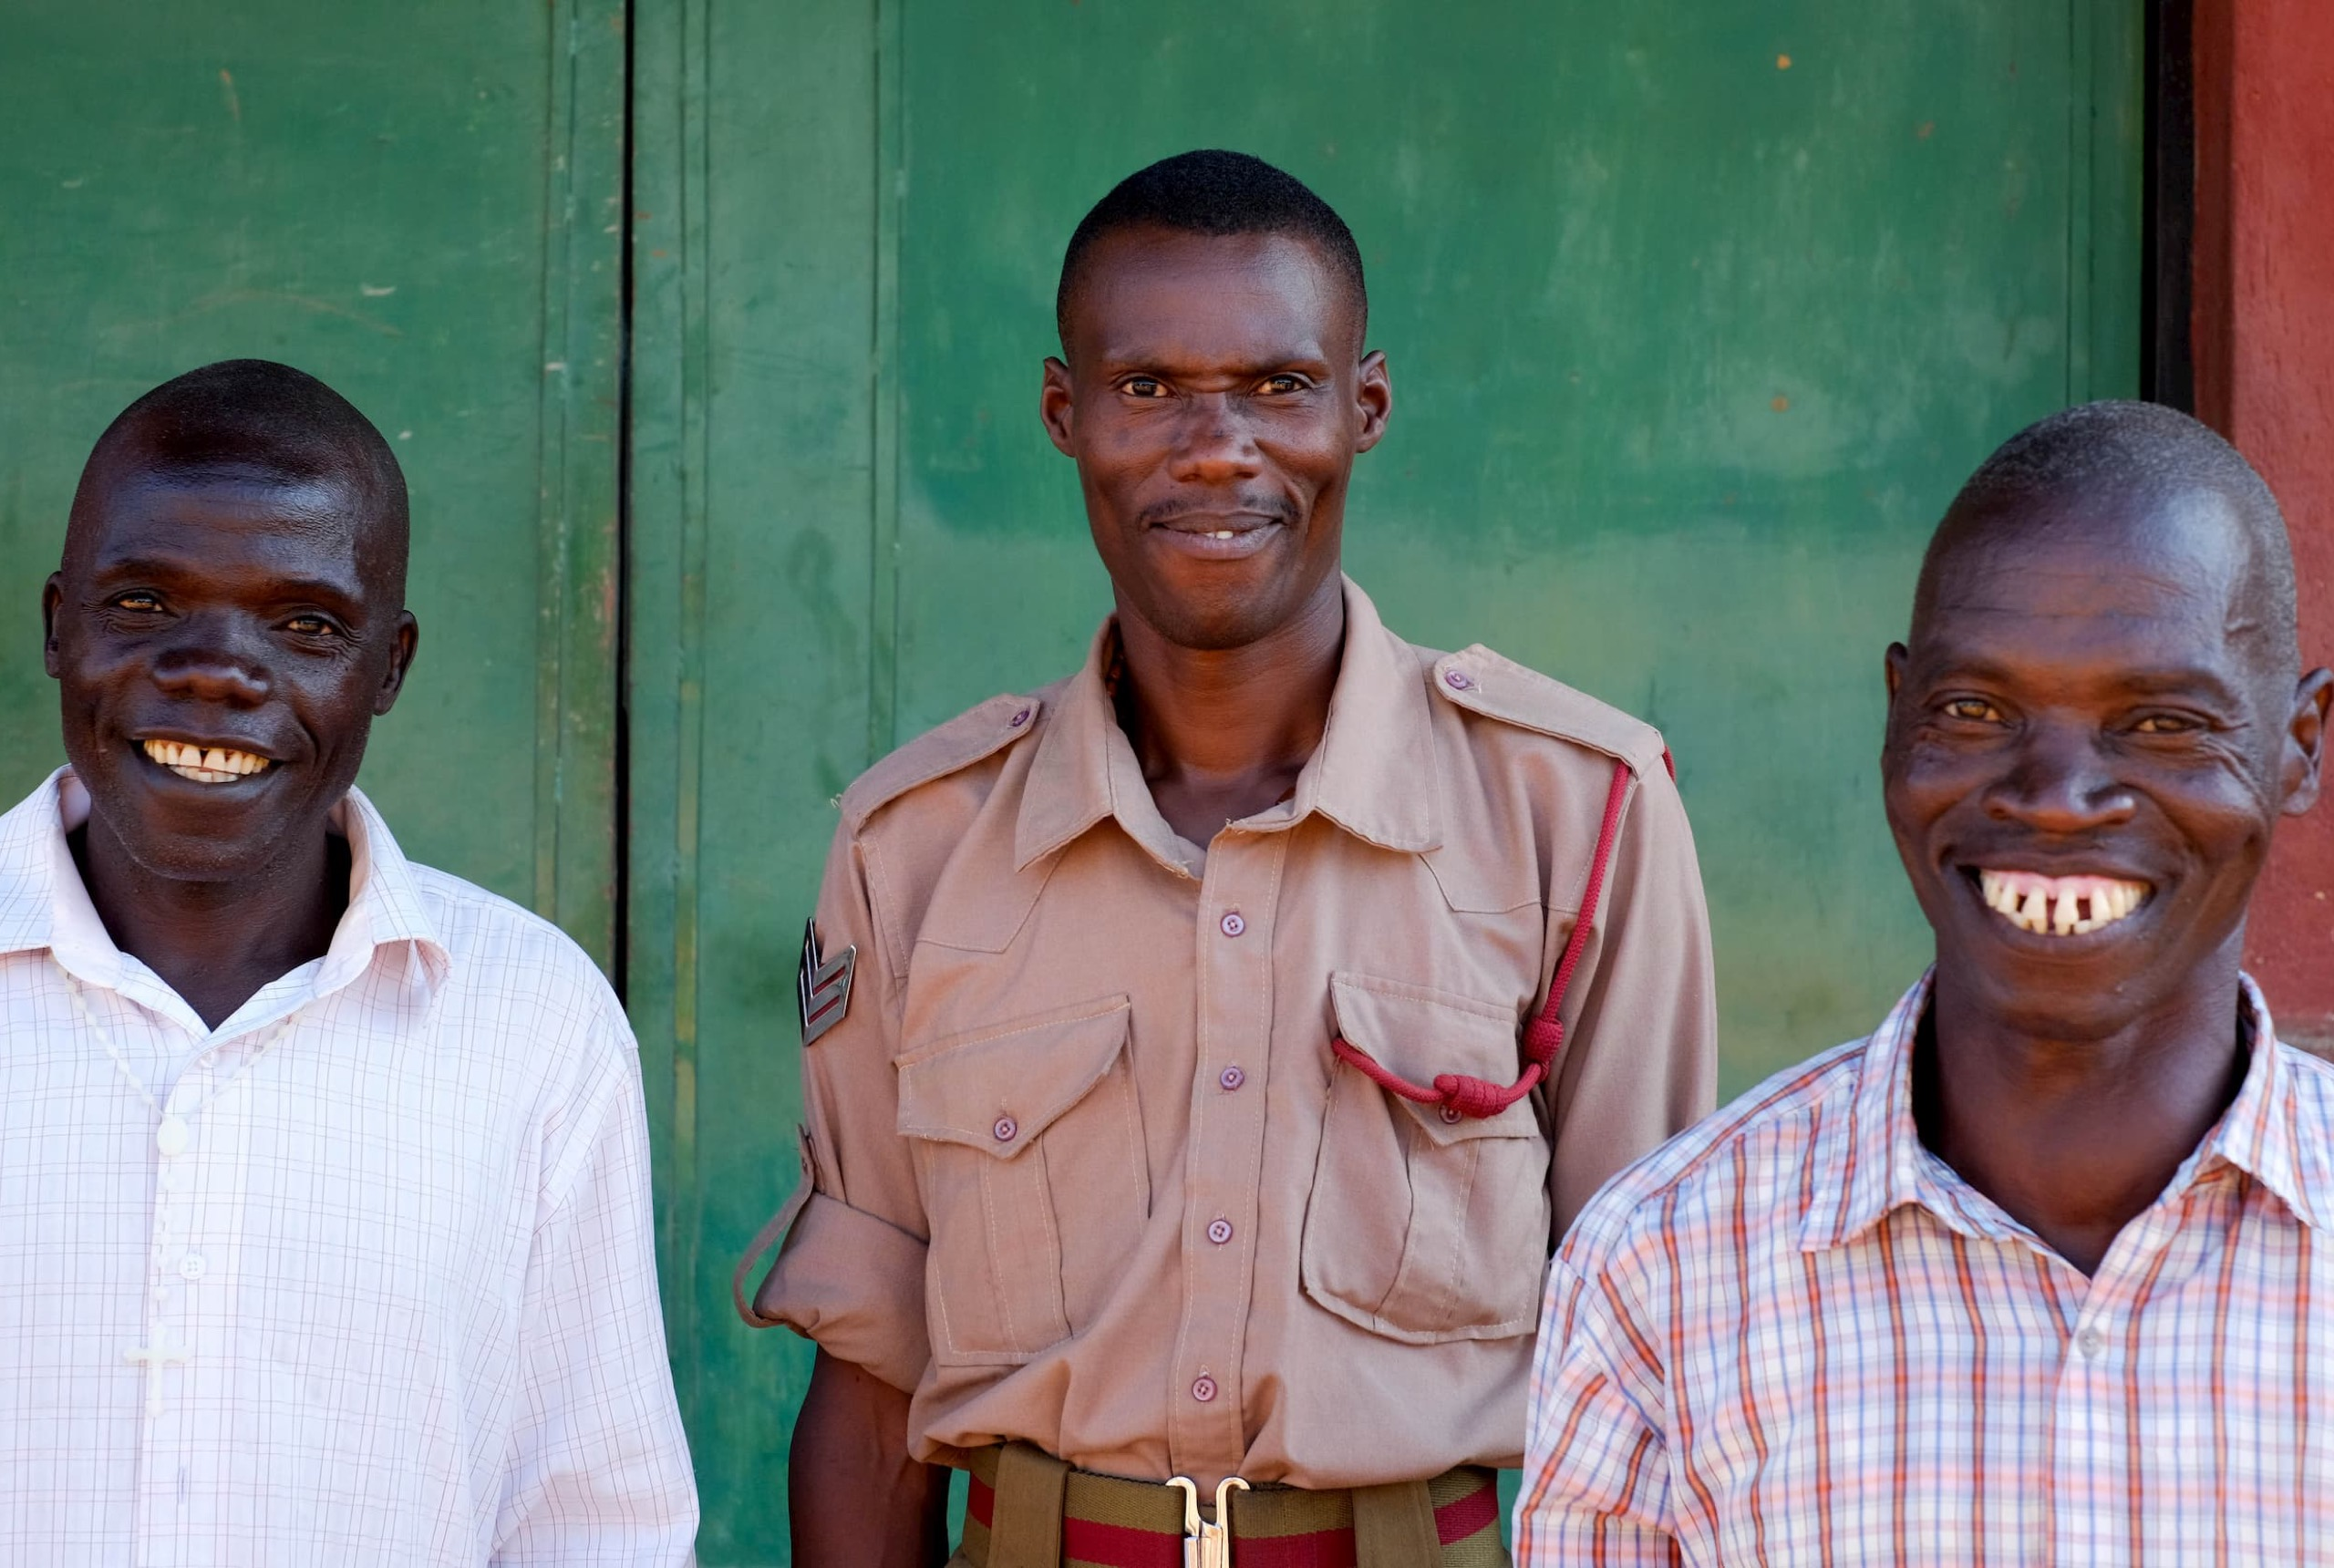 A man in a white shirt, a man in a beige uniform, and a man in a plaid shirt are looking at the camera and smiling in front of a green building.